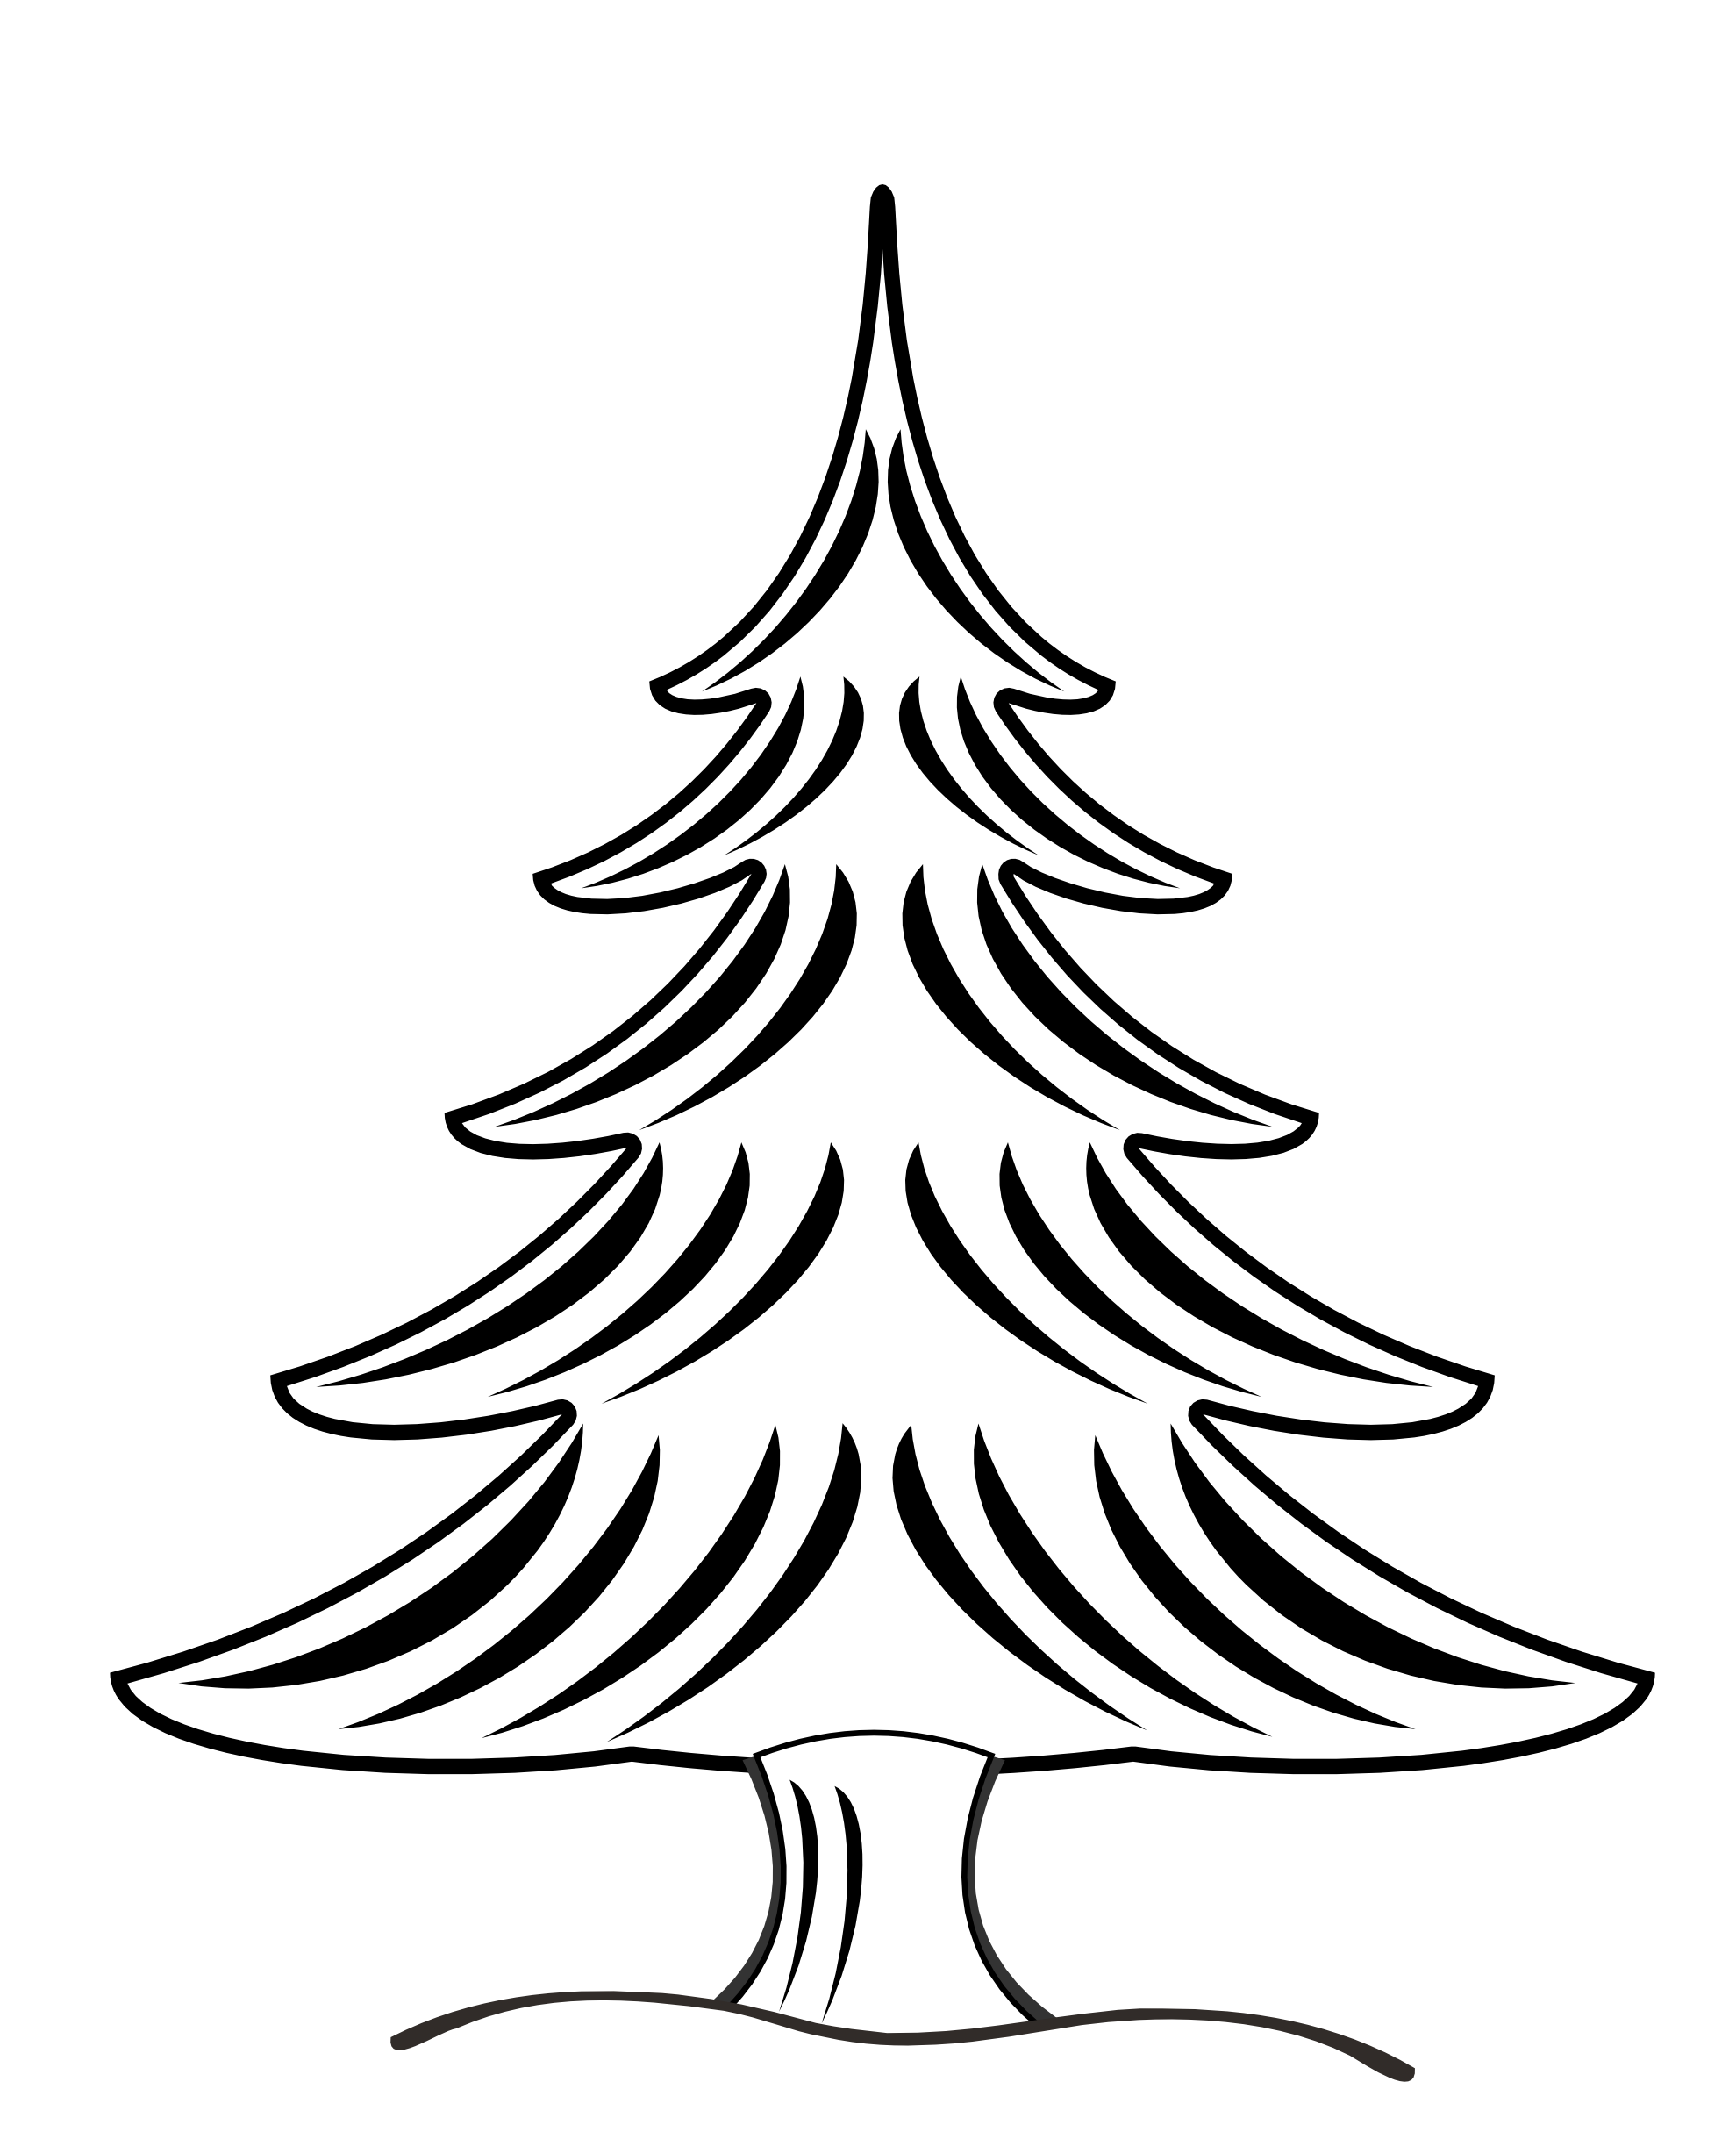 Black and white tree clipart free graphic download Tree Drawing Clipart at GetDrawings.com | Free for personal use Tree ... graphic download